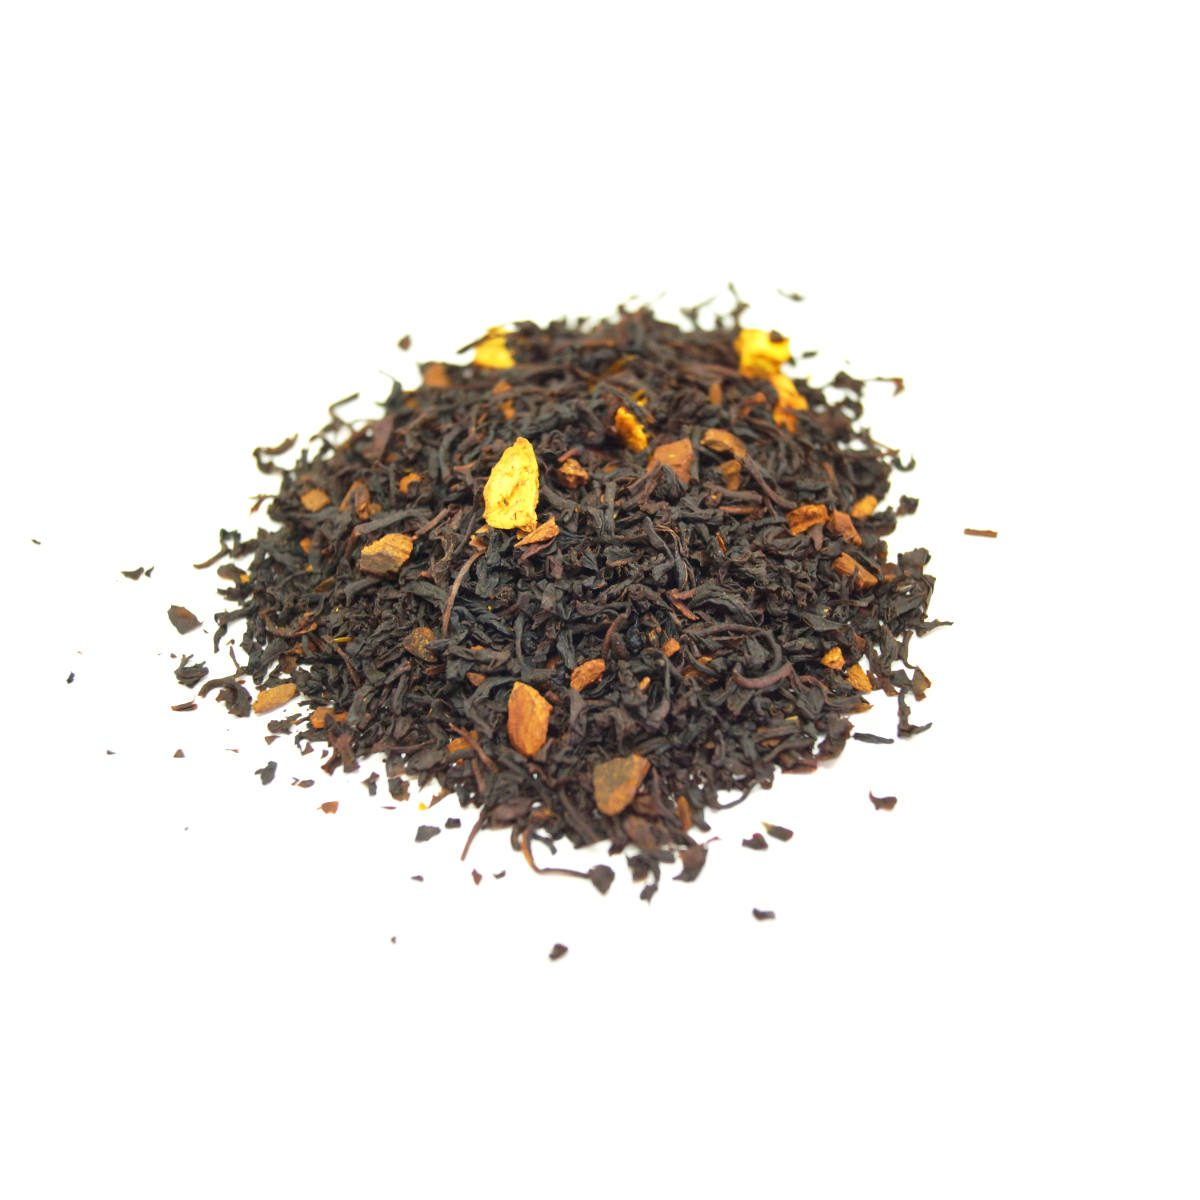 Cinnamon Orange Spice Black Tea with a double blended black tea with orange pieces and extra cinnamon. This is the best Cinnamon Tea.